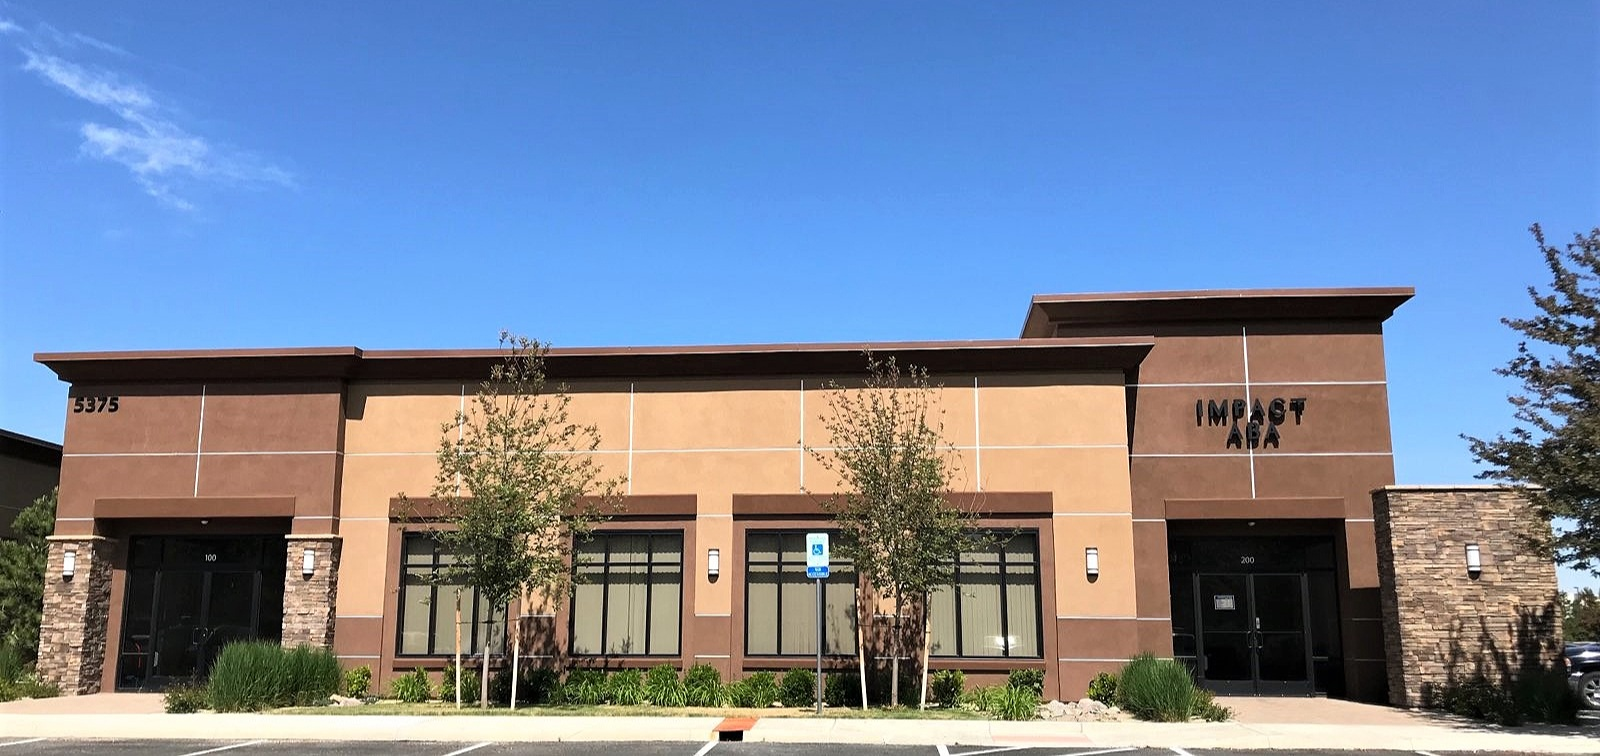 Our Clinic - We have over 4100 square feet of clinic space (full building) in South Reno.